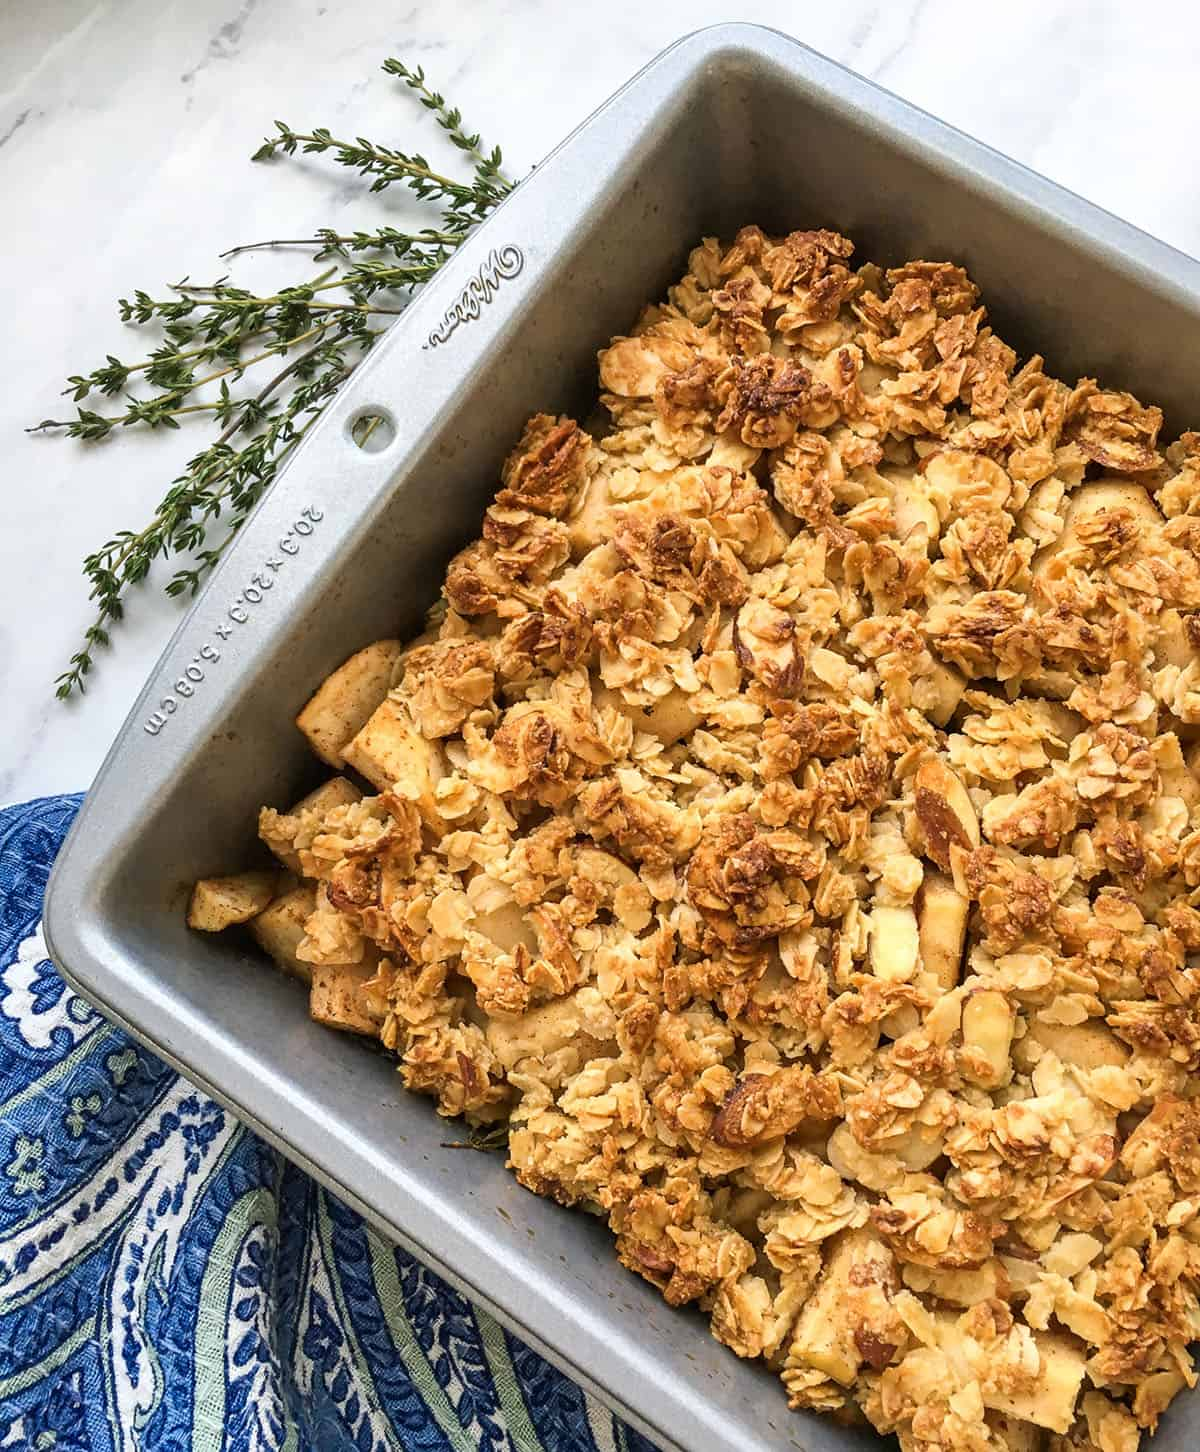 baked apple crisp in square metal pan with blue napkin and sprig of thyme on the side